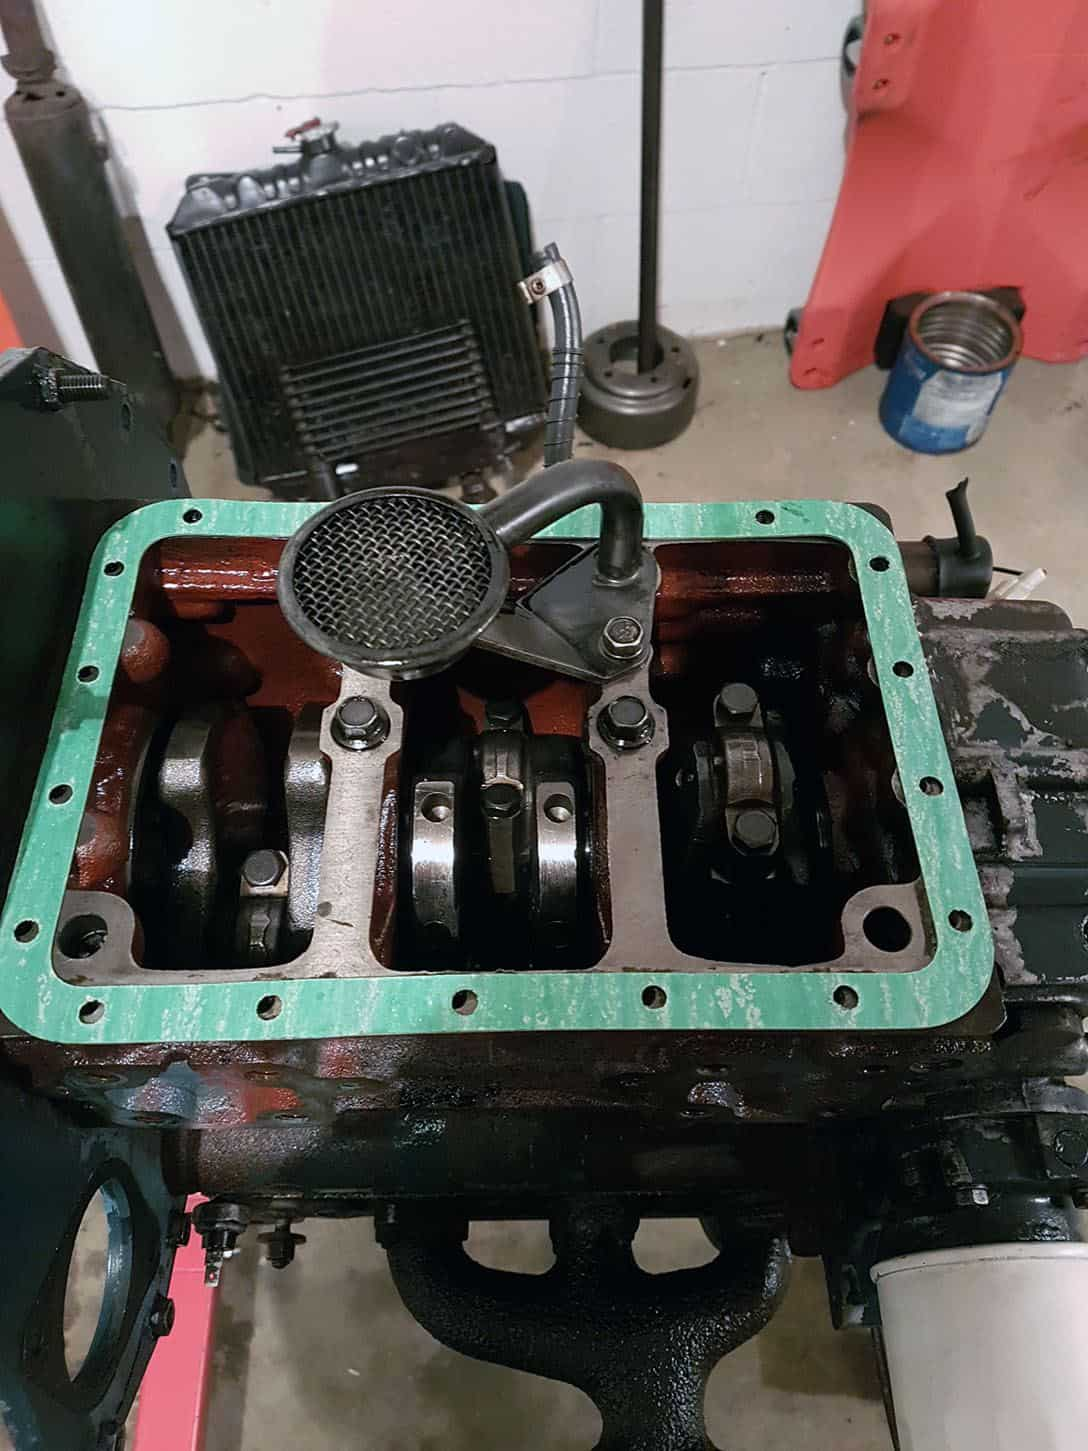 Kubota D950 Crankcase with Oil Pan Removed